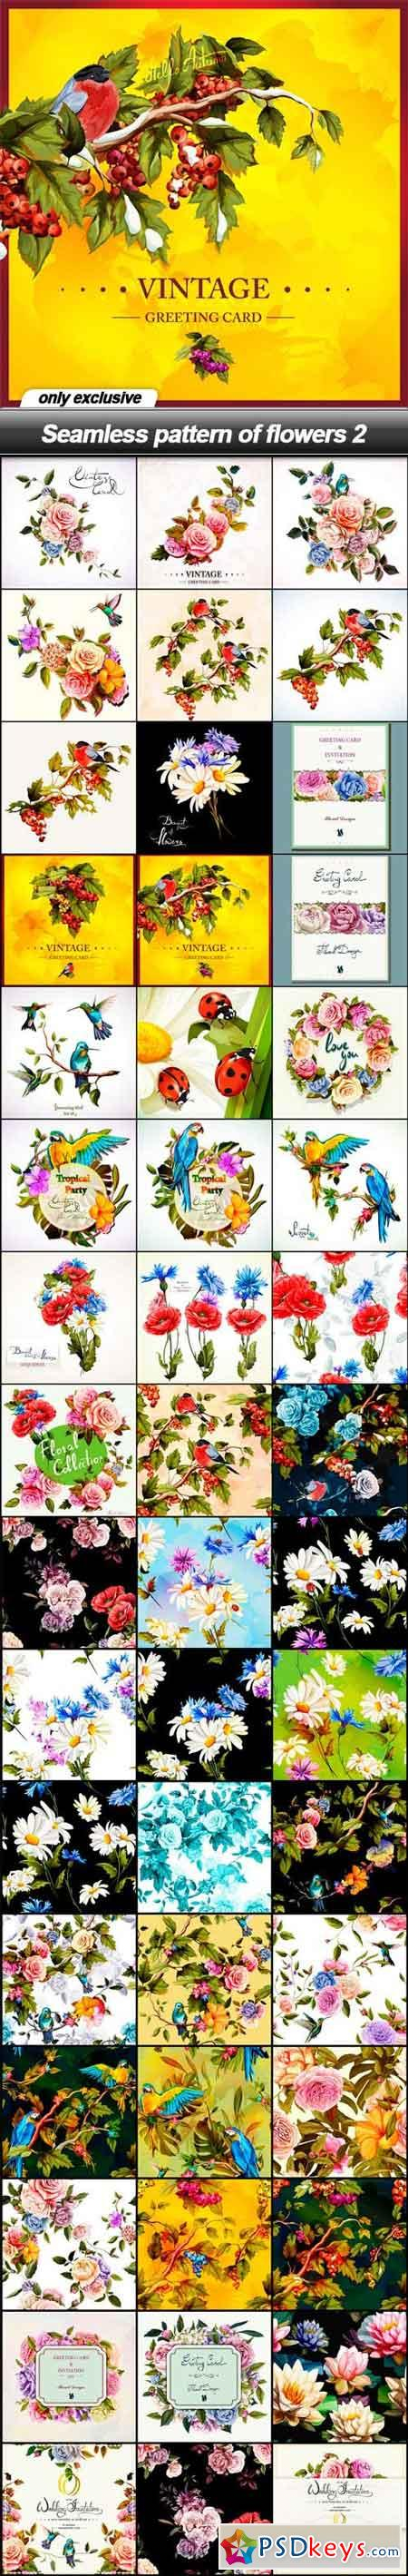 Seamless pattern of flowers 2 - 47 EPS